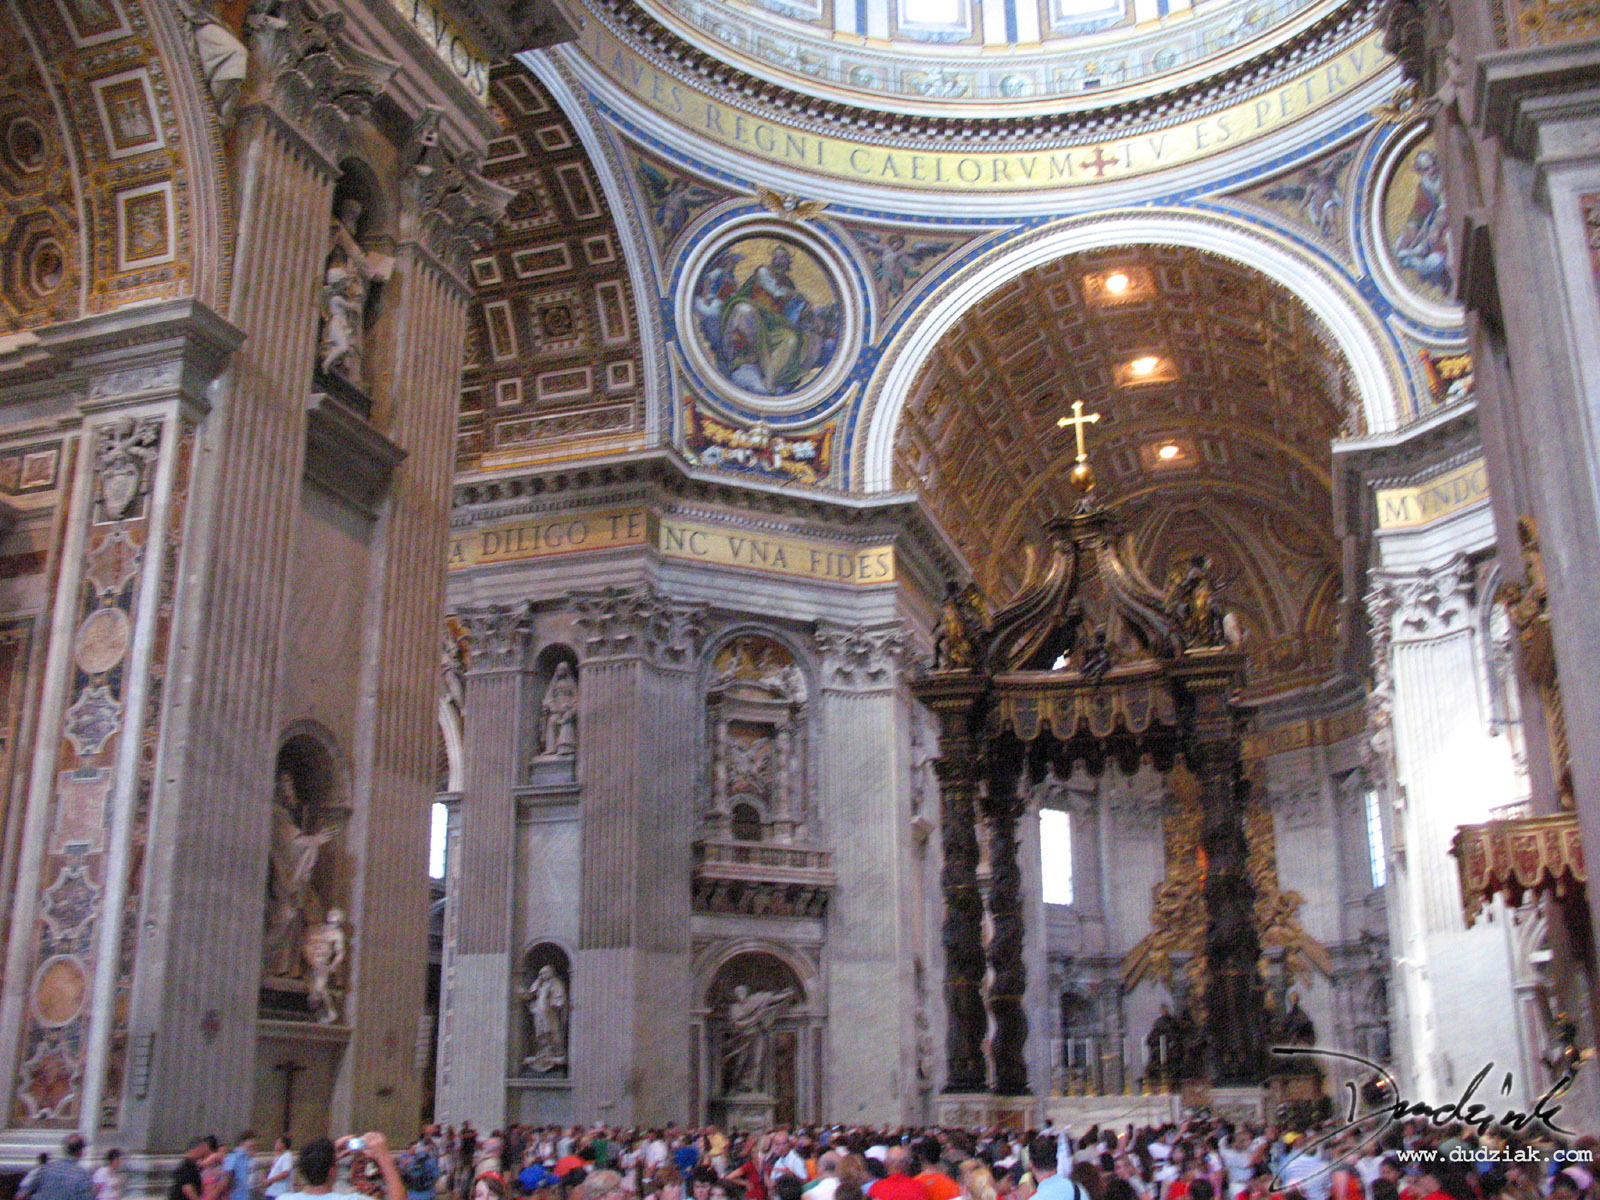 St Peters Basilica http://www.dudziak.com/picture.php/inside_saint_peters_basilica7870